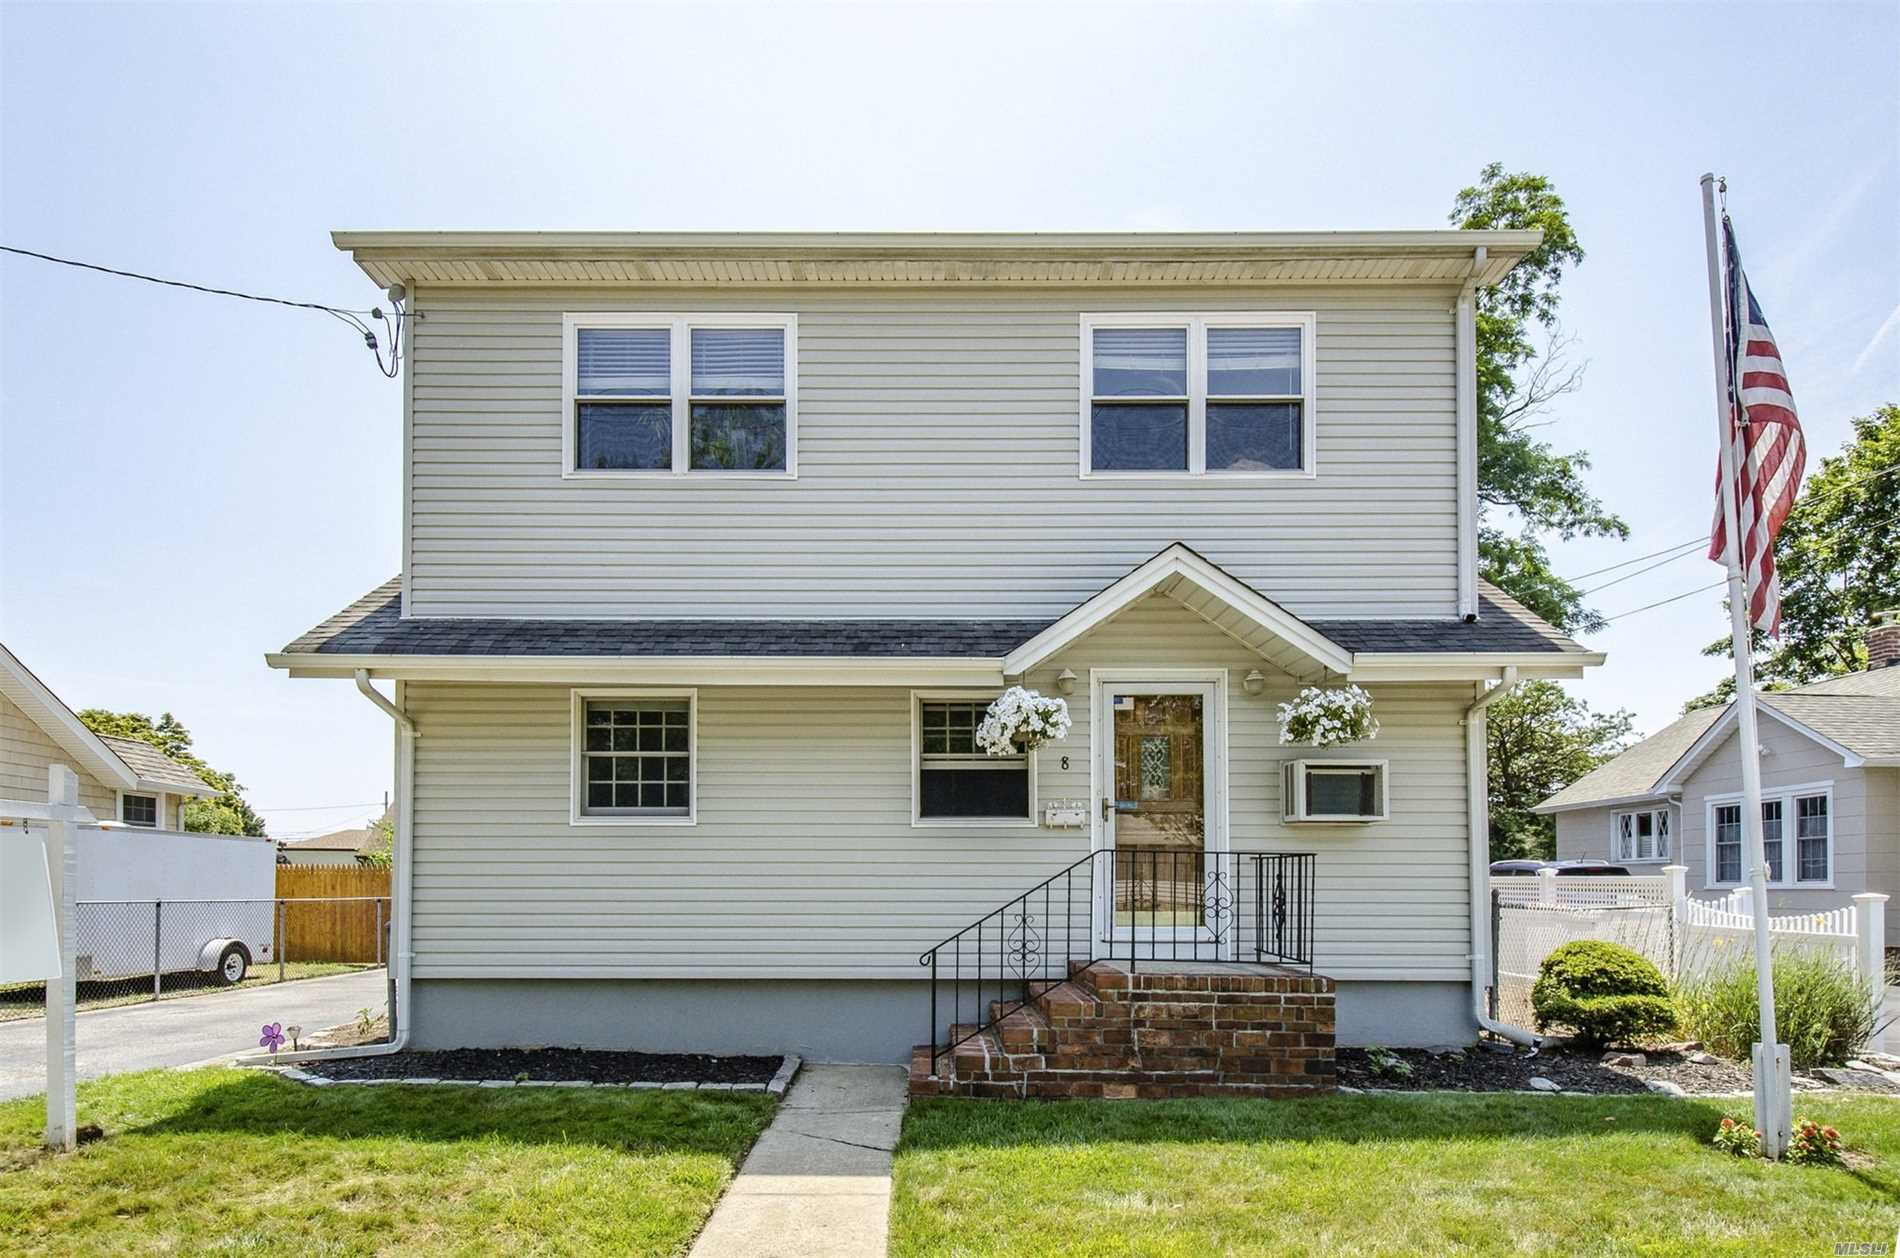 Expanded Cape Cod With Oversized Master Suite (12X24) With Separate Shower And Whirlpool Tub Walk In Closet Plus An Attached Nursery Or Office 3 Additional Bedrooms And Full Bath Full Finished Basement Oversized Driveway With Detached Garage Cozy Private Yard With Hot Tub